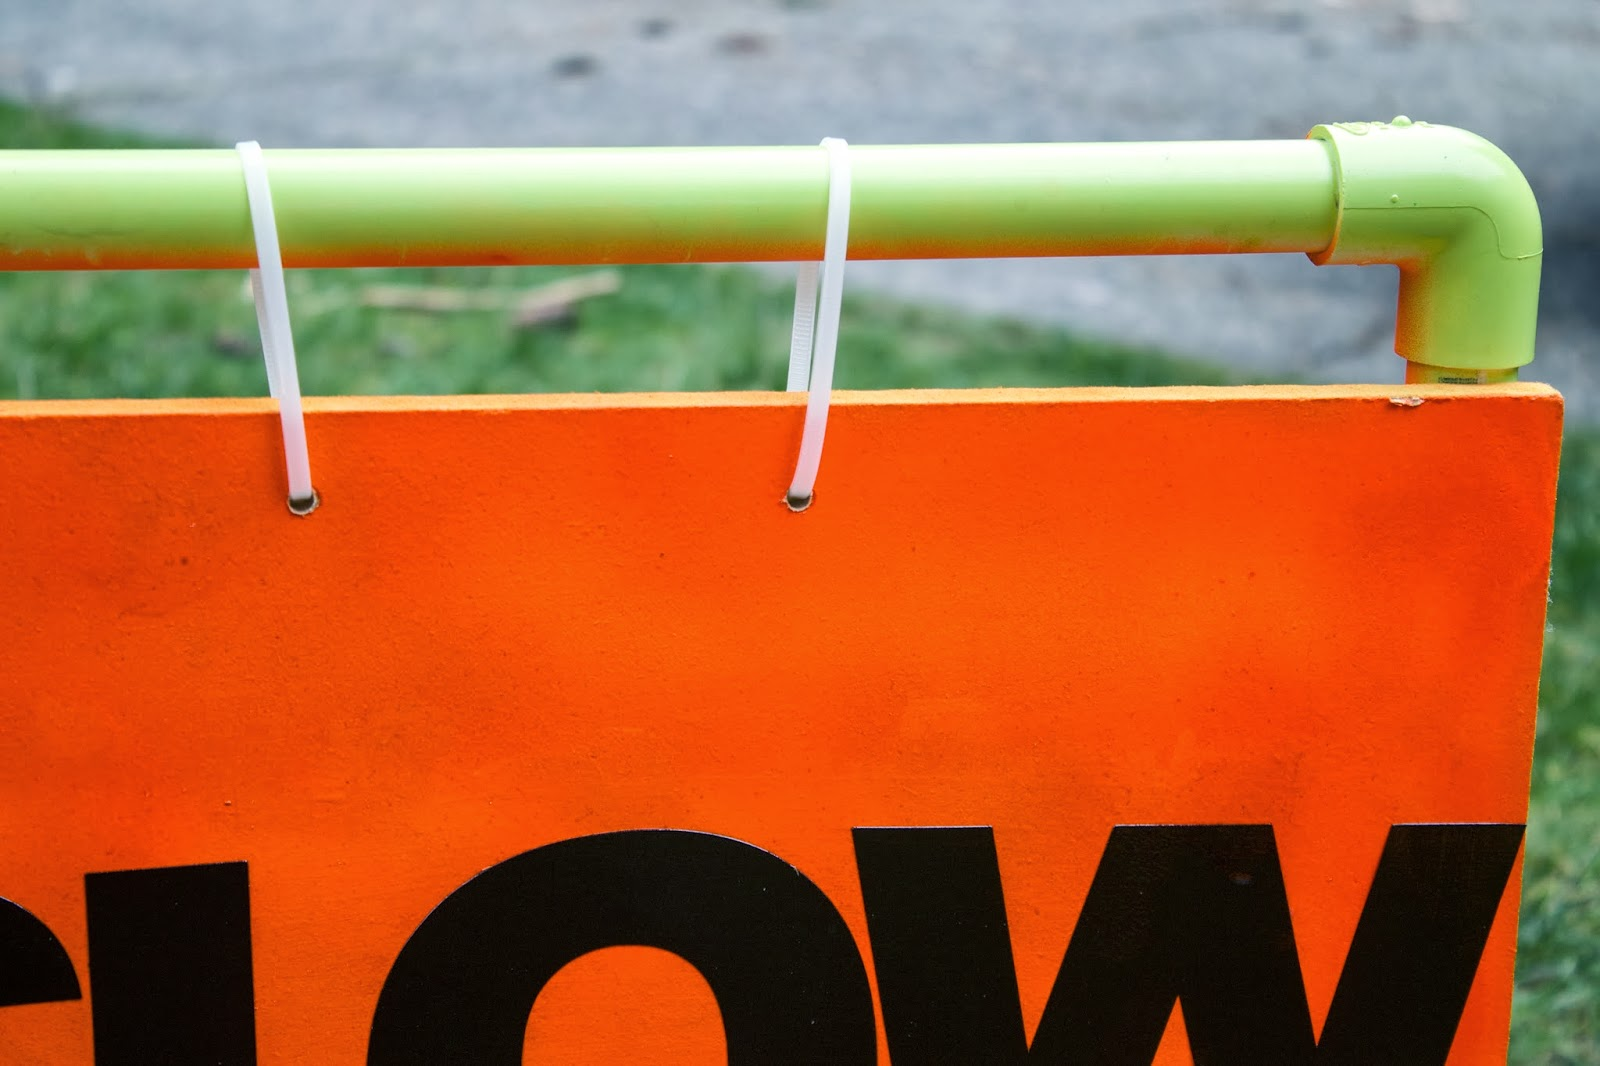 Sowdering about day the pvc pipe slow sign